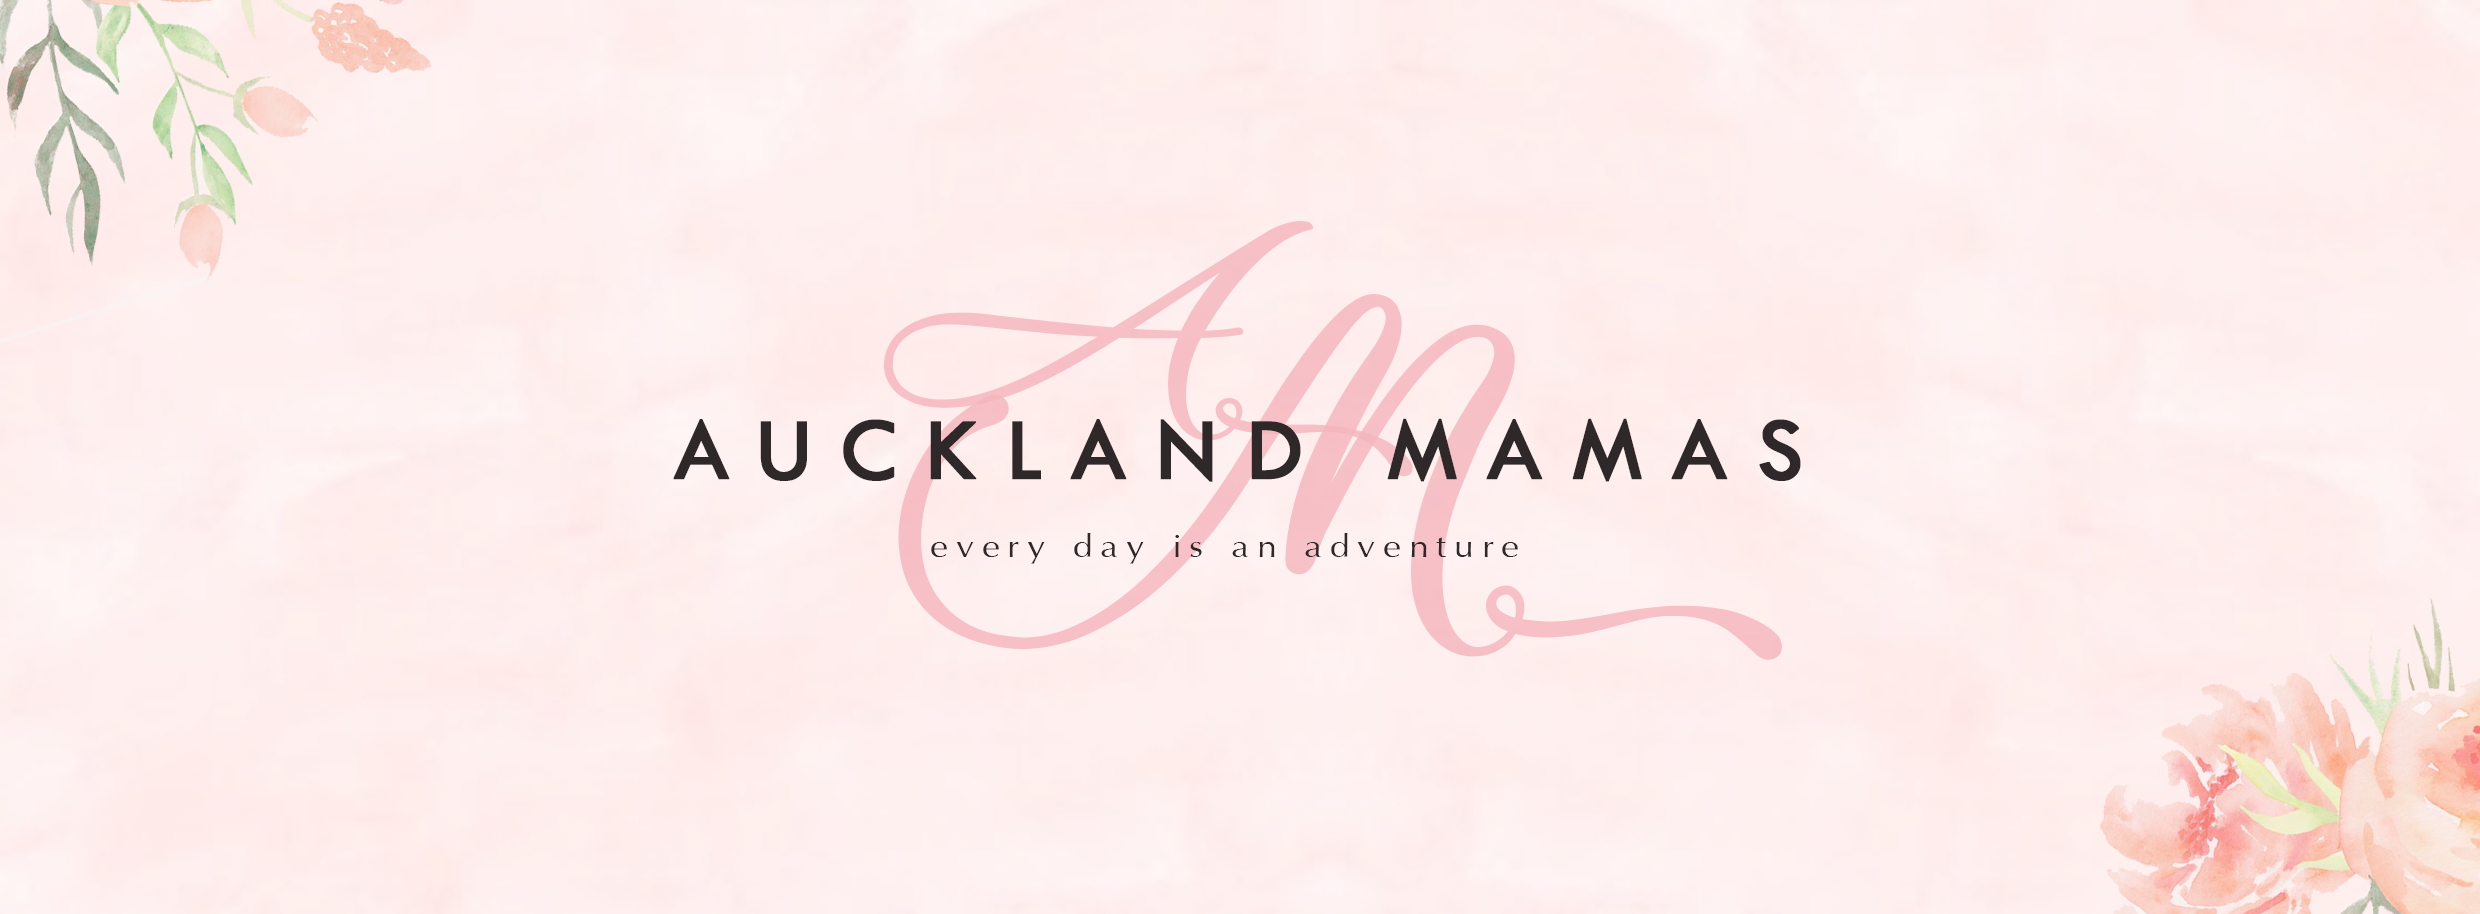 Auckland Mamas